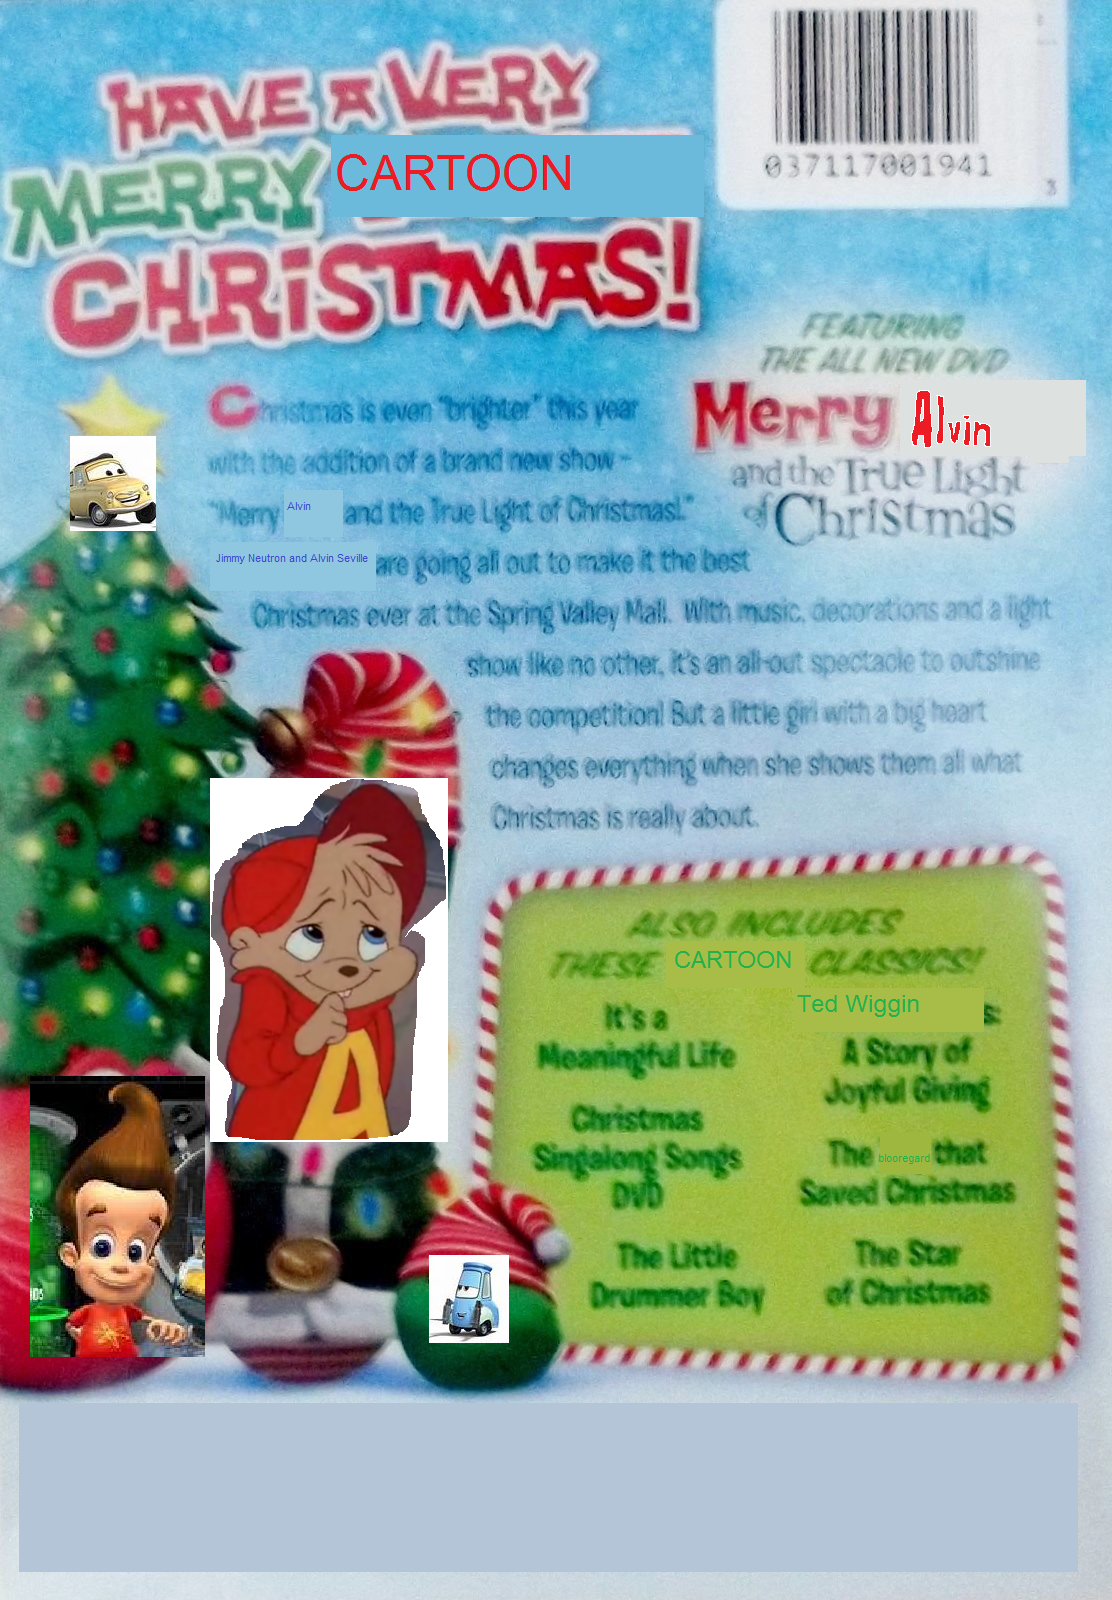 cartoontales christmas classics dvd back coverpng - Christmas Classics Dvd